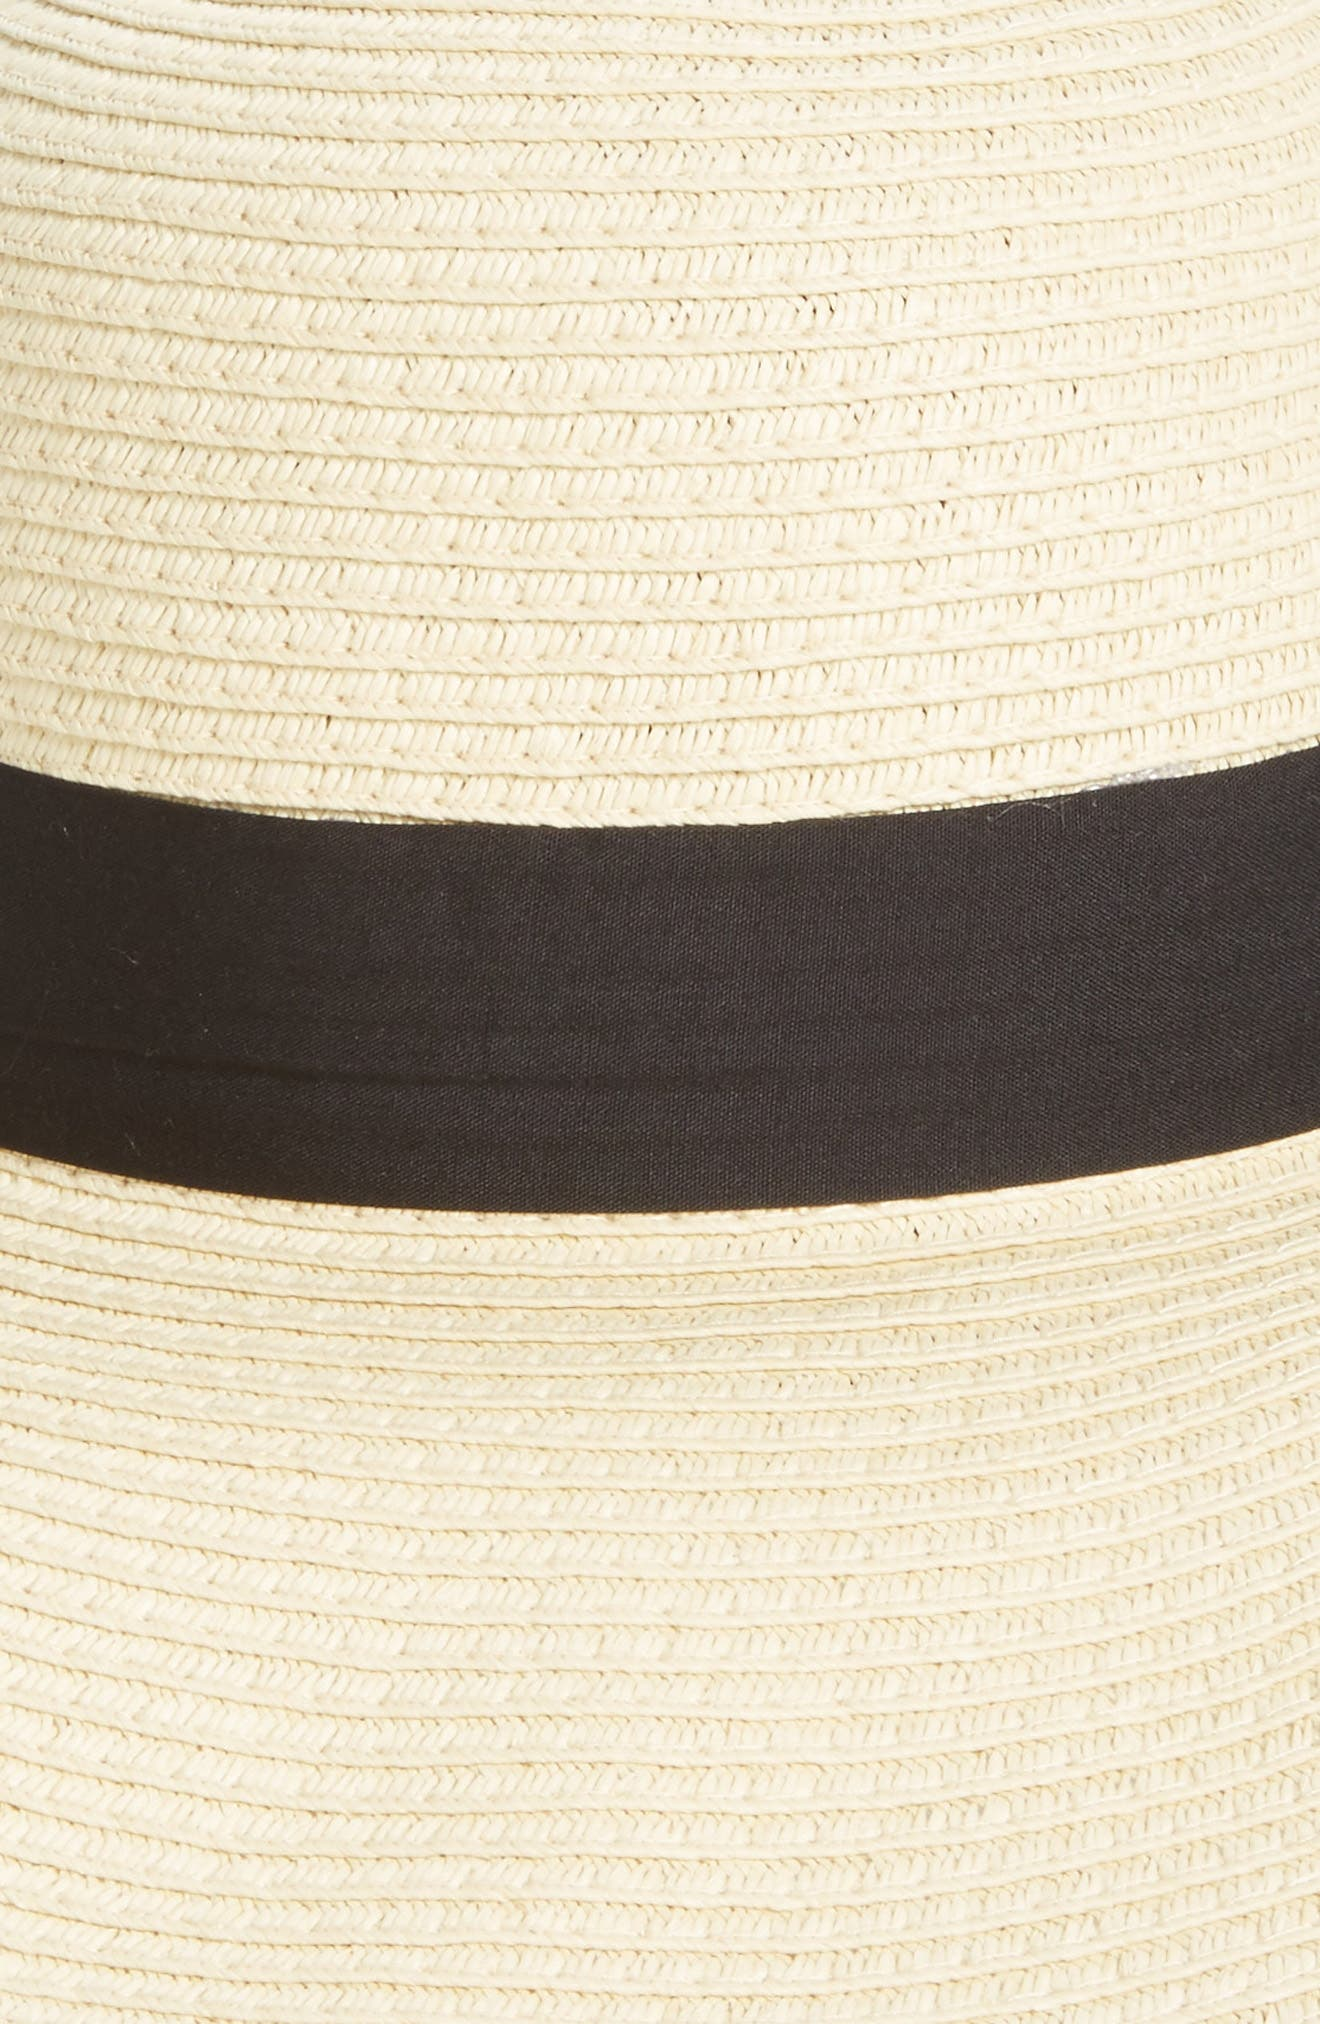 Bow Band Floppy Straw Hat,                             Alternate thumbnail 2, color,                             Natural/ Black